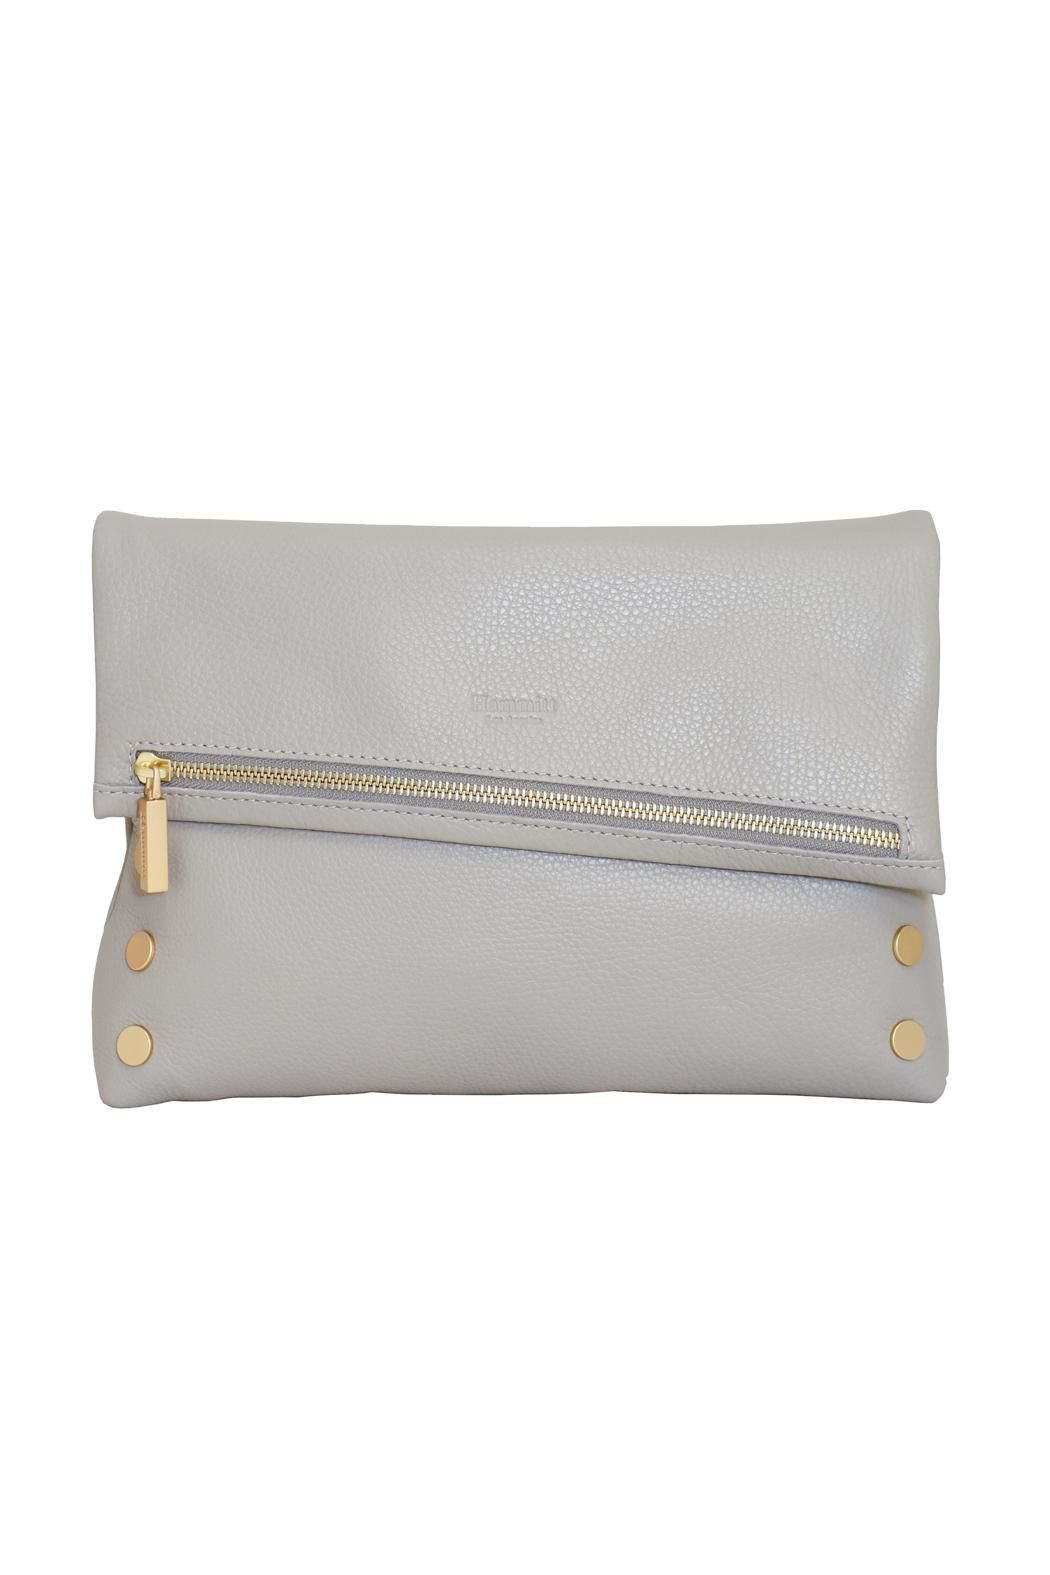 bfd19f0cdc69 This Hammitt VIP is the definition of living large. This oversized clutch  features a dedicated